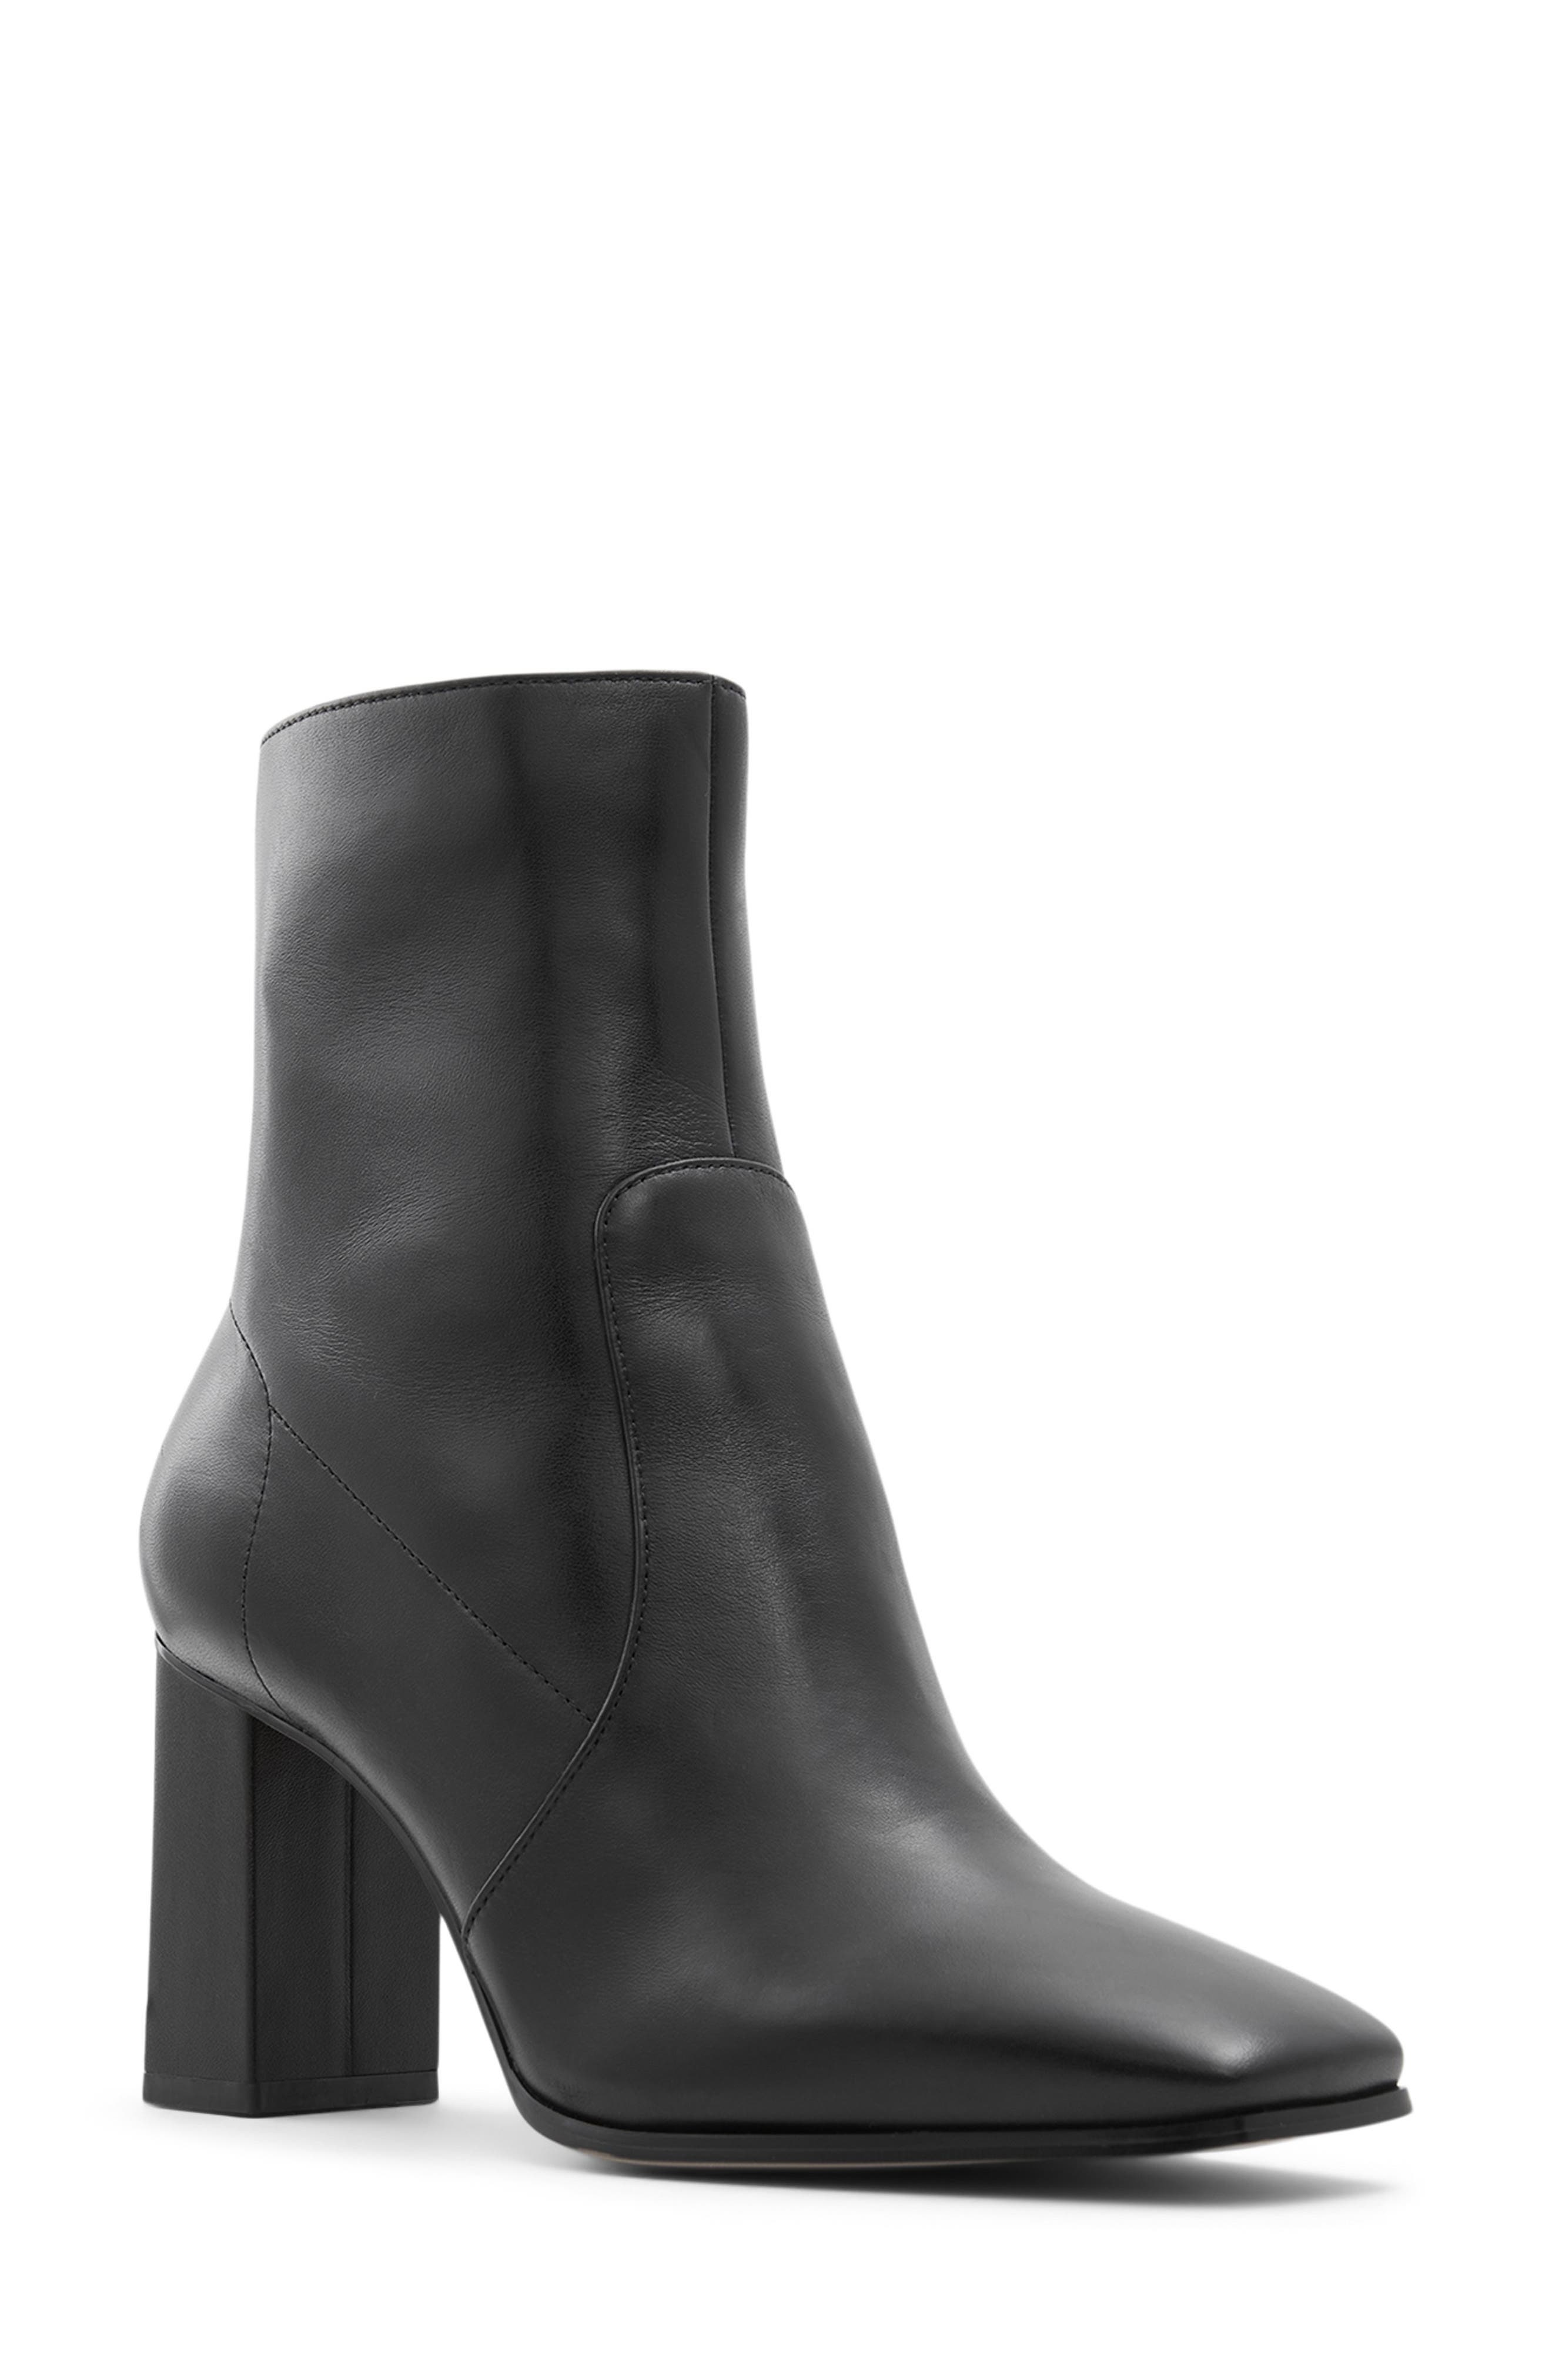 Theliven Bootie